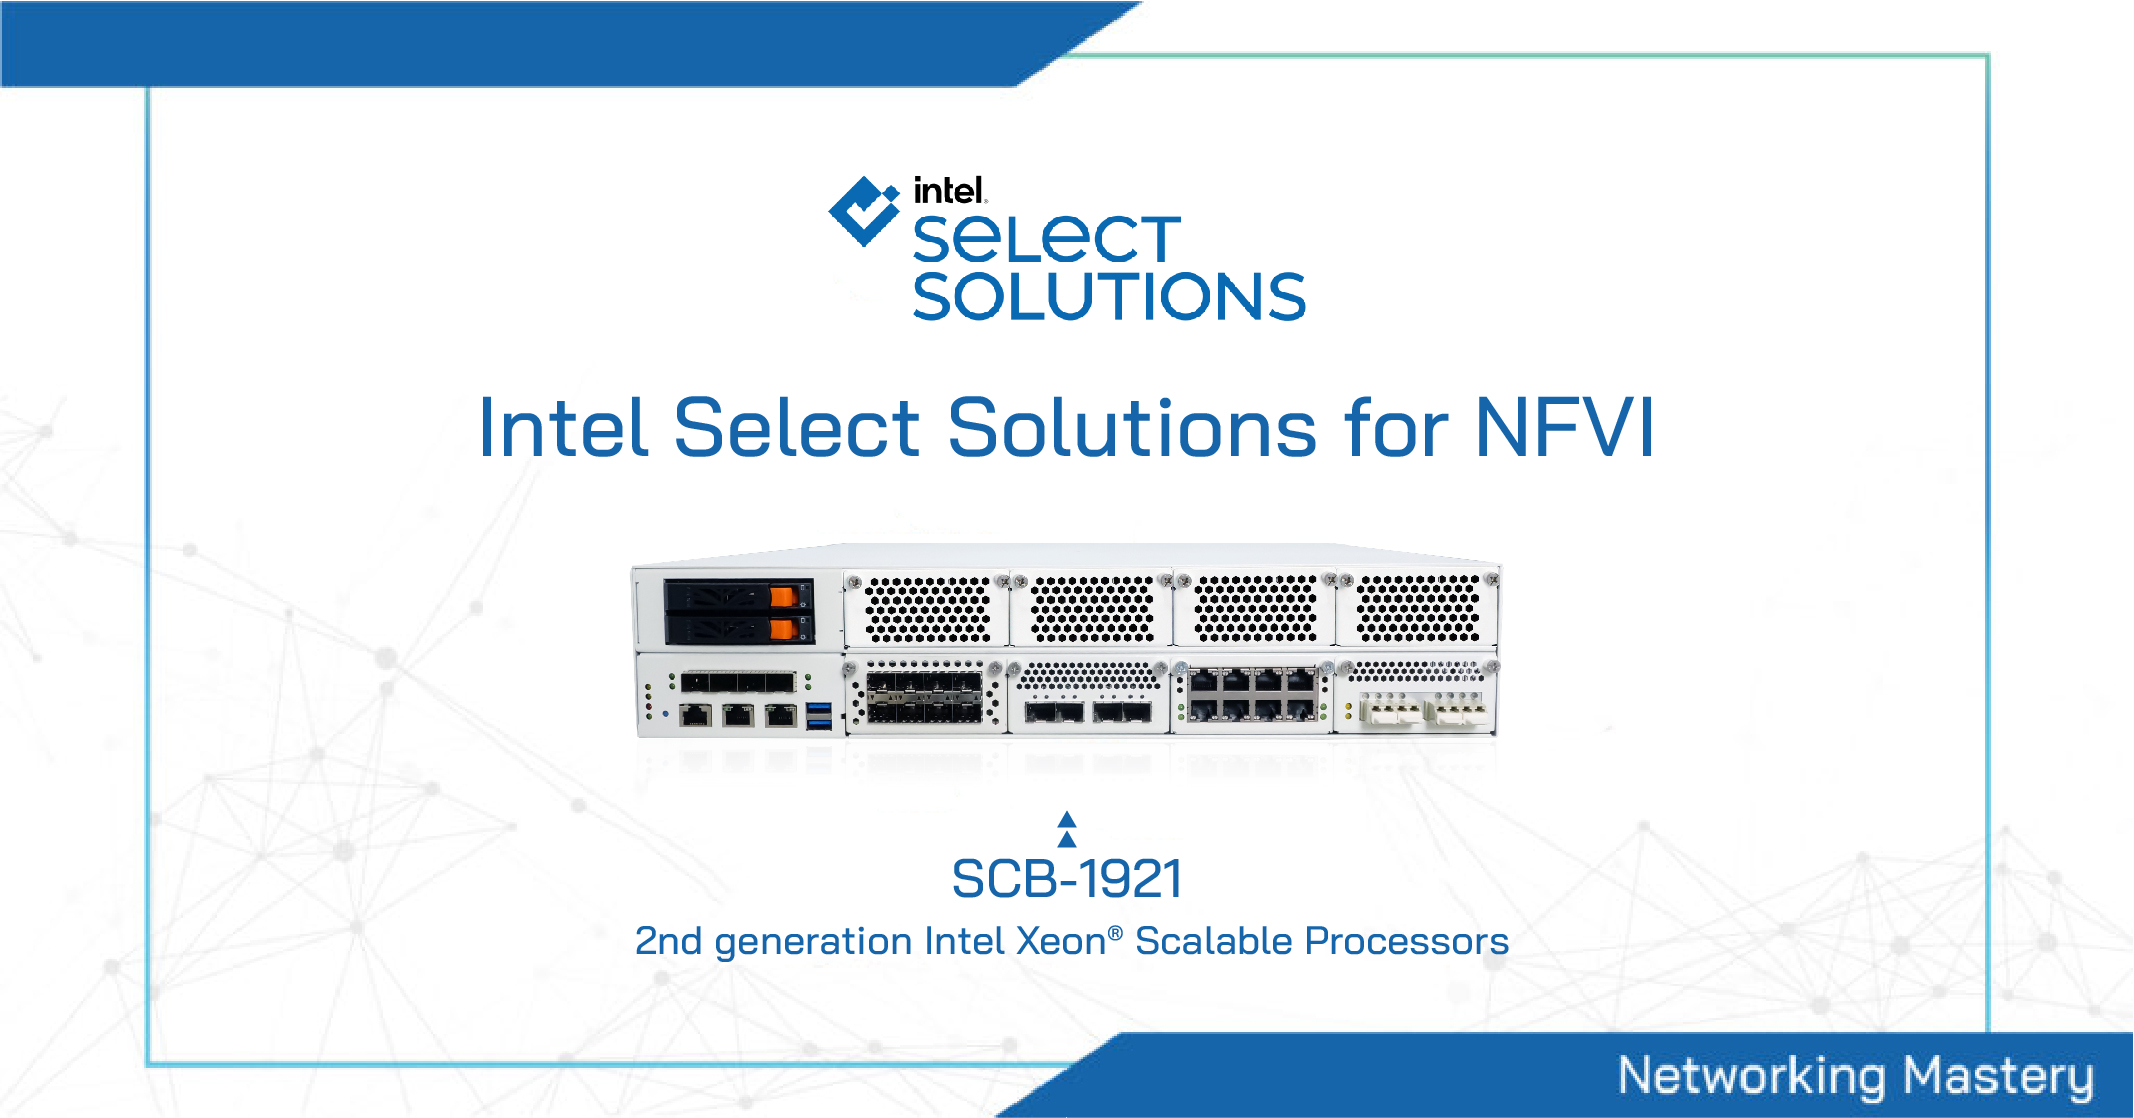 intel select solutions for NFVI